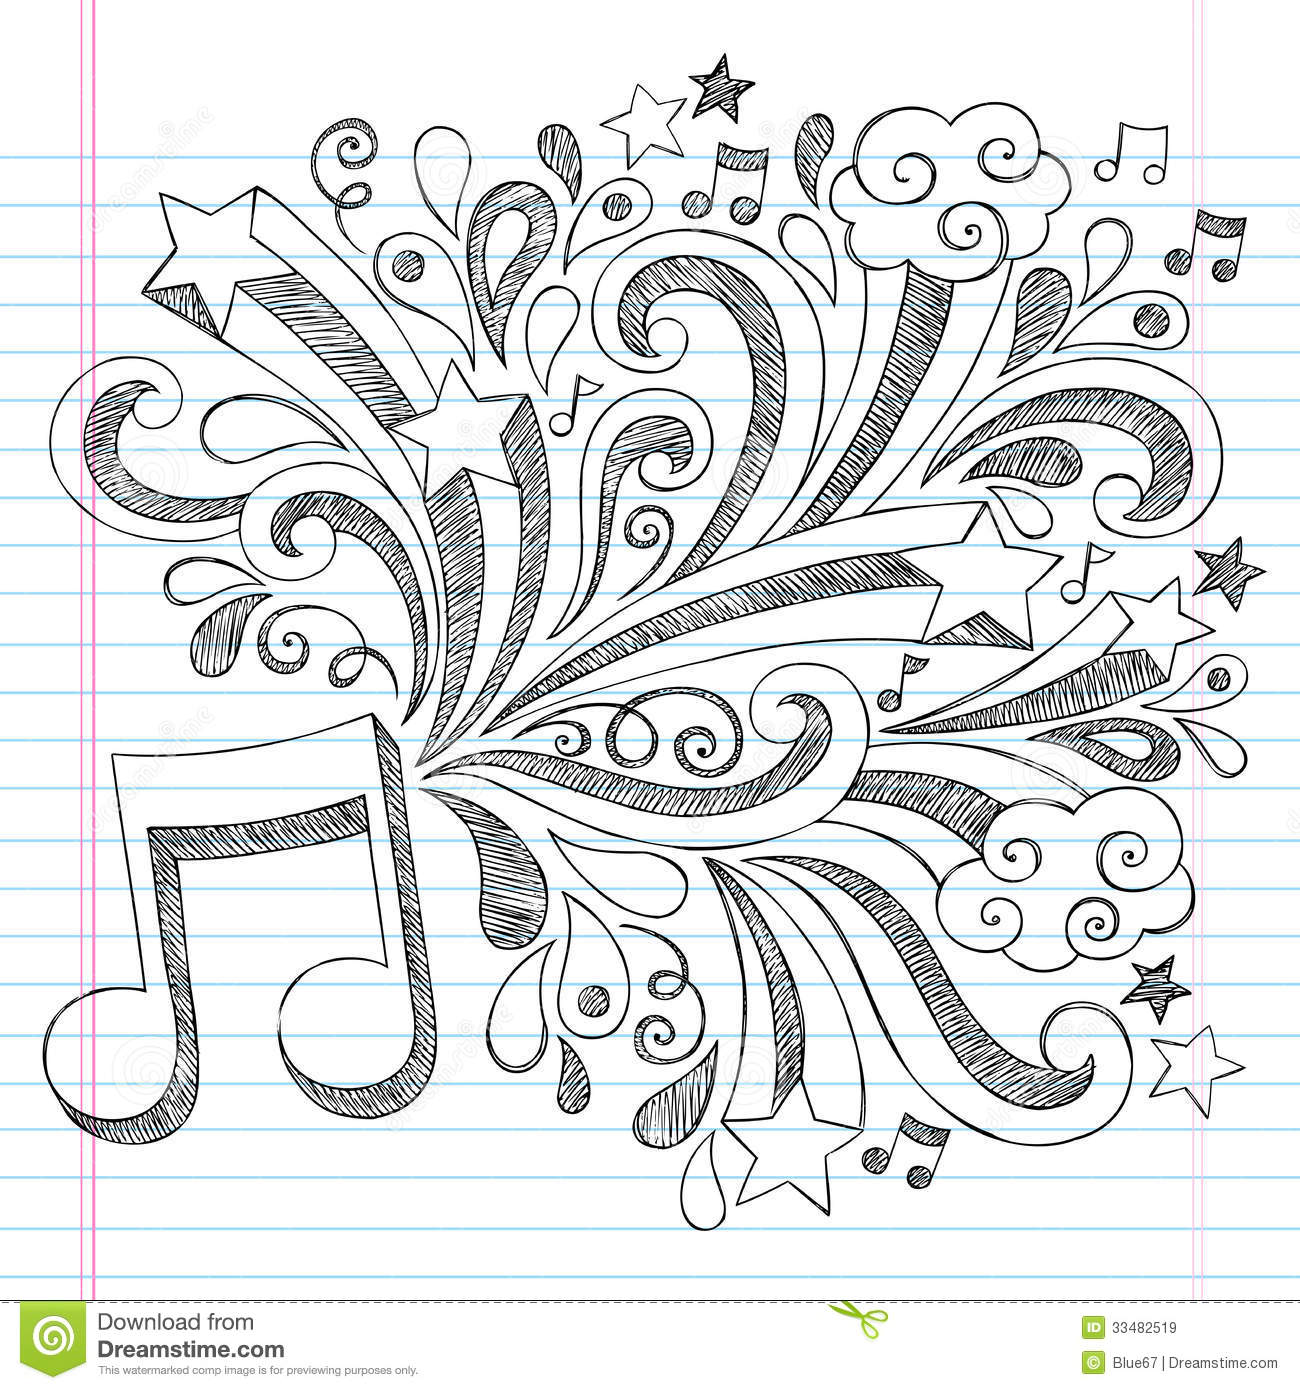 Drawn music notes doodle art This draw more a how